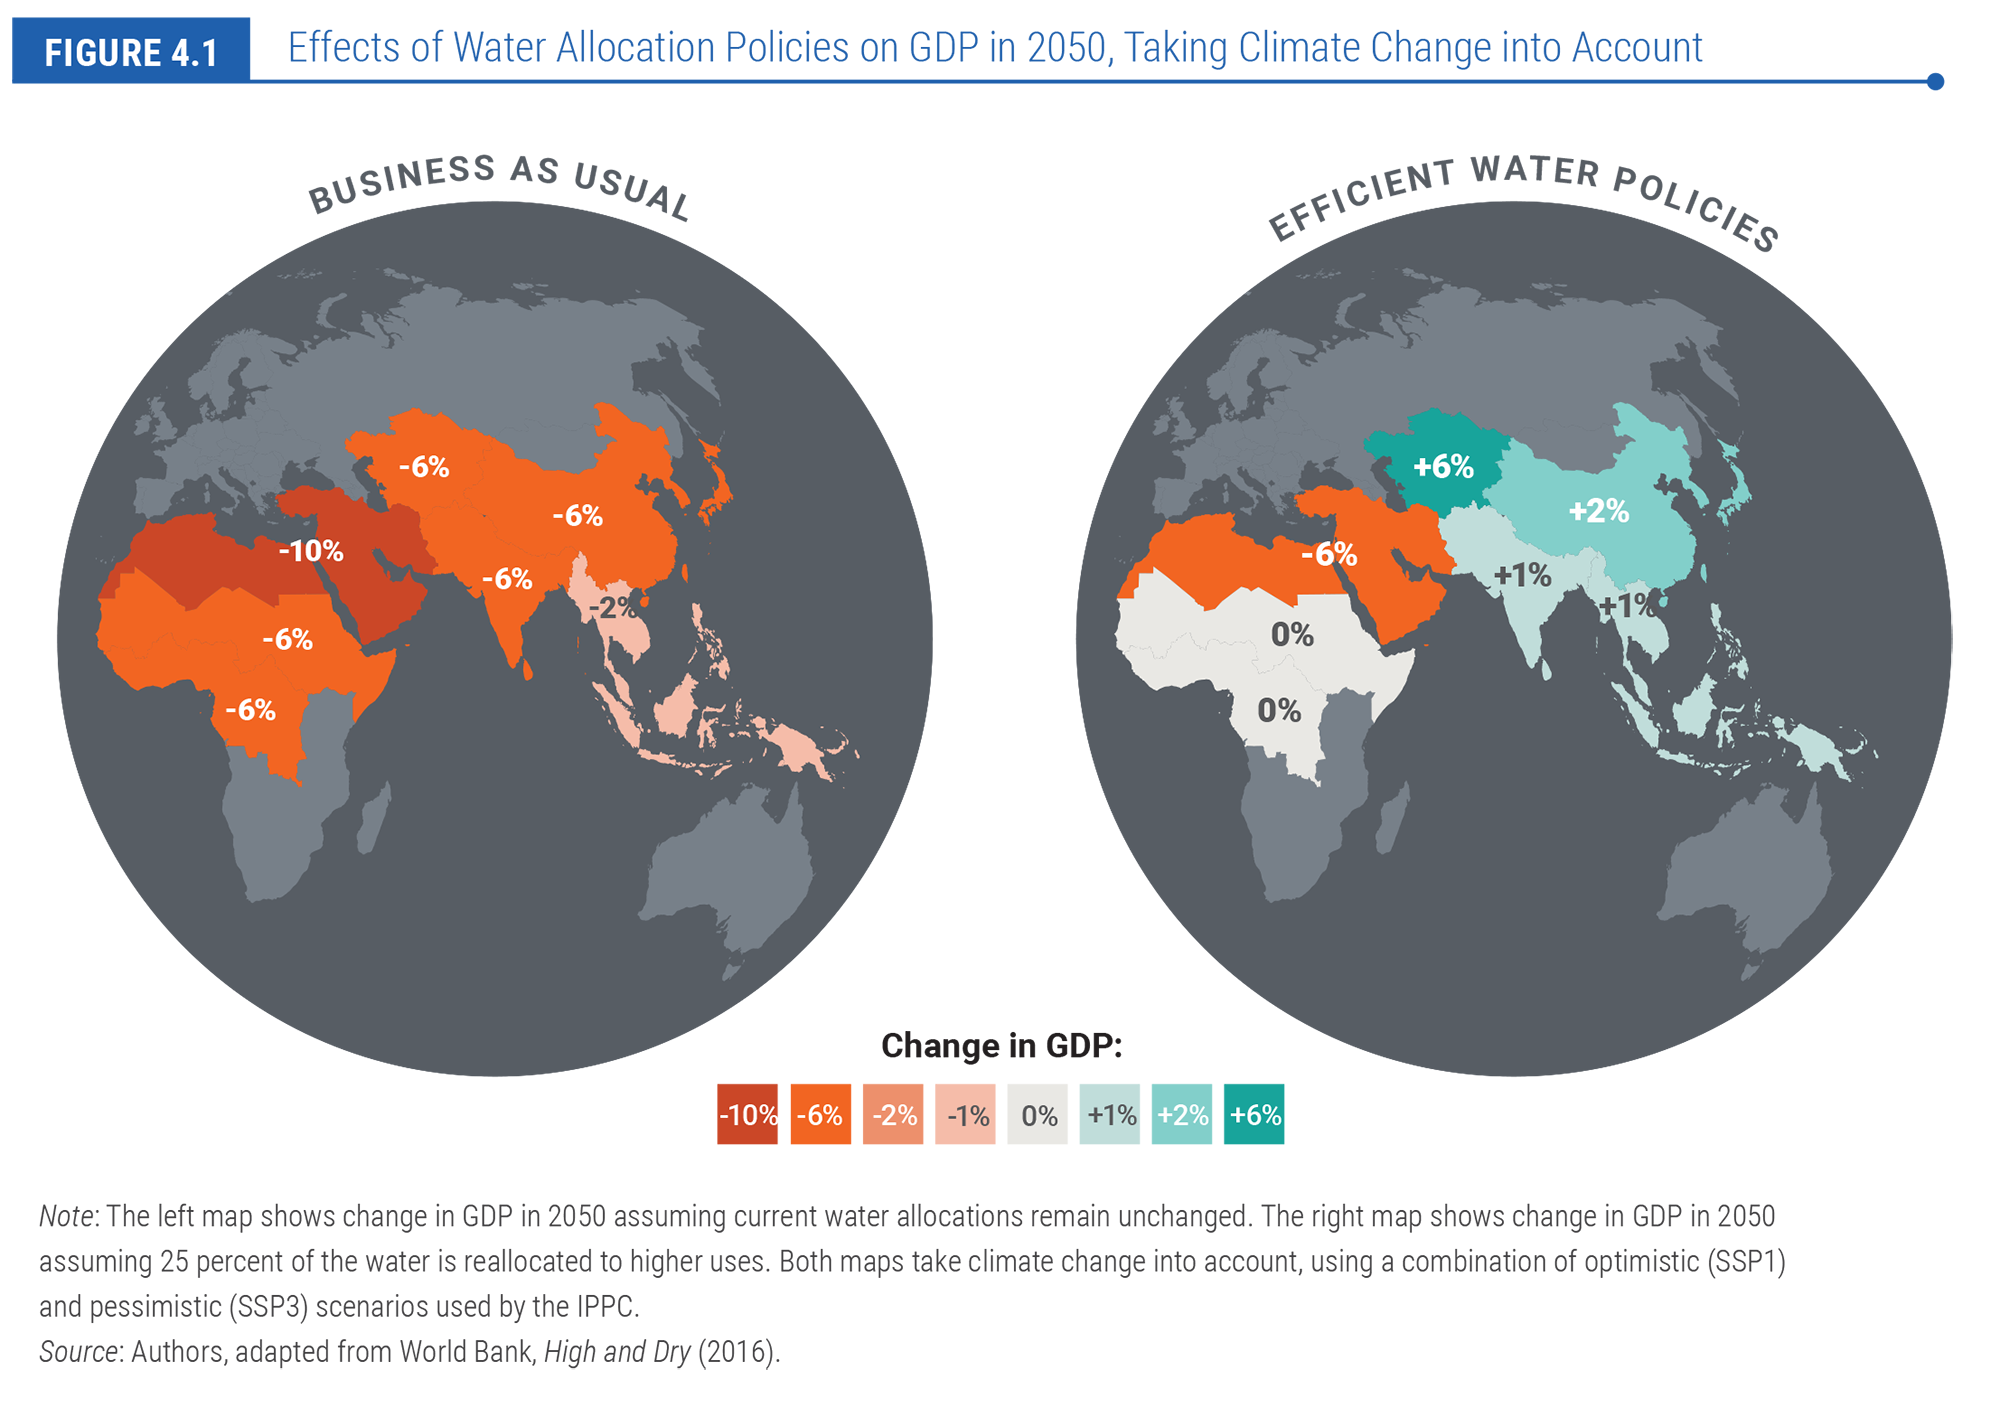 Effects of Water Allocation Policies on GDP in 2050, Taking Climate Change into Account